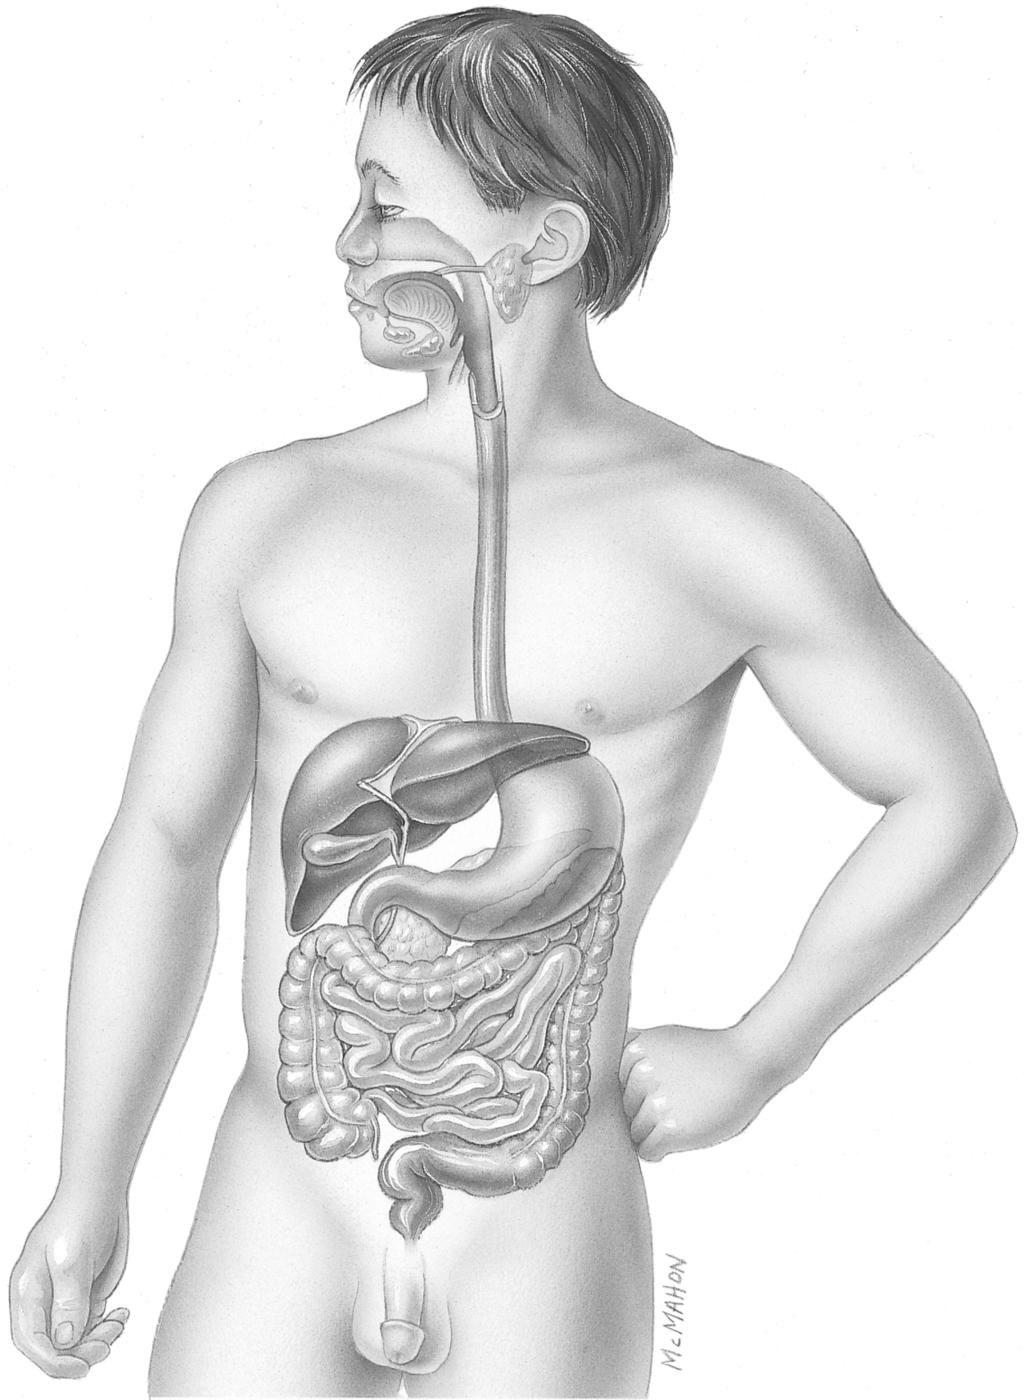 D. Labeling Exercise 92. Label the parts of the digestive system as indicated in Figure 16-1.